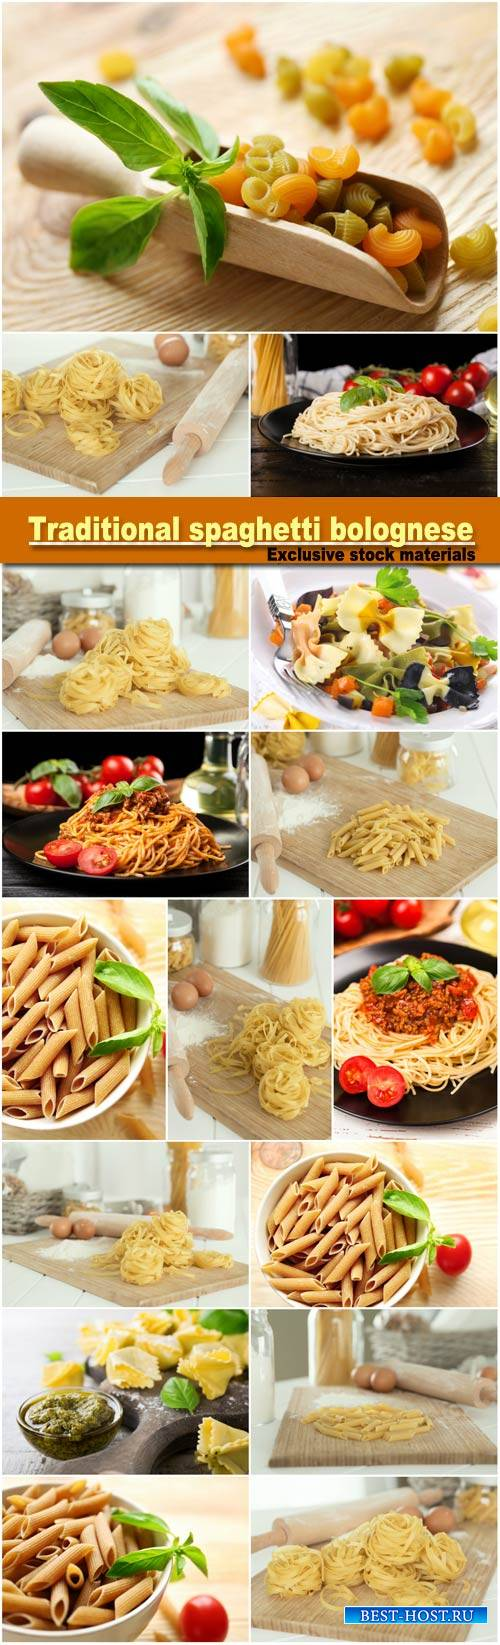 Traditional spaghetti bolognese, penne pasta in white bowl